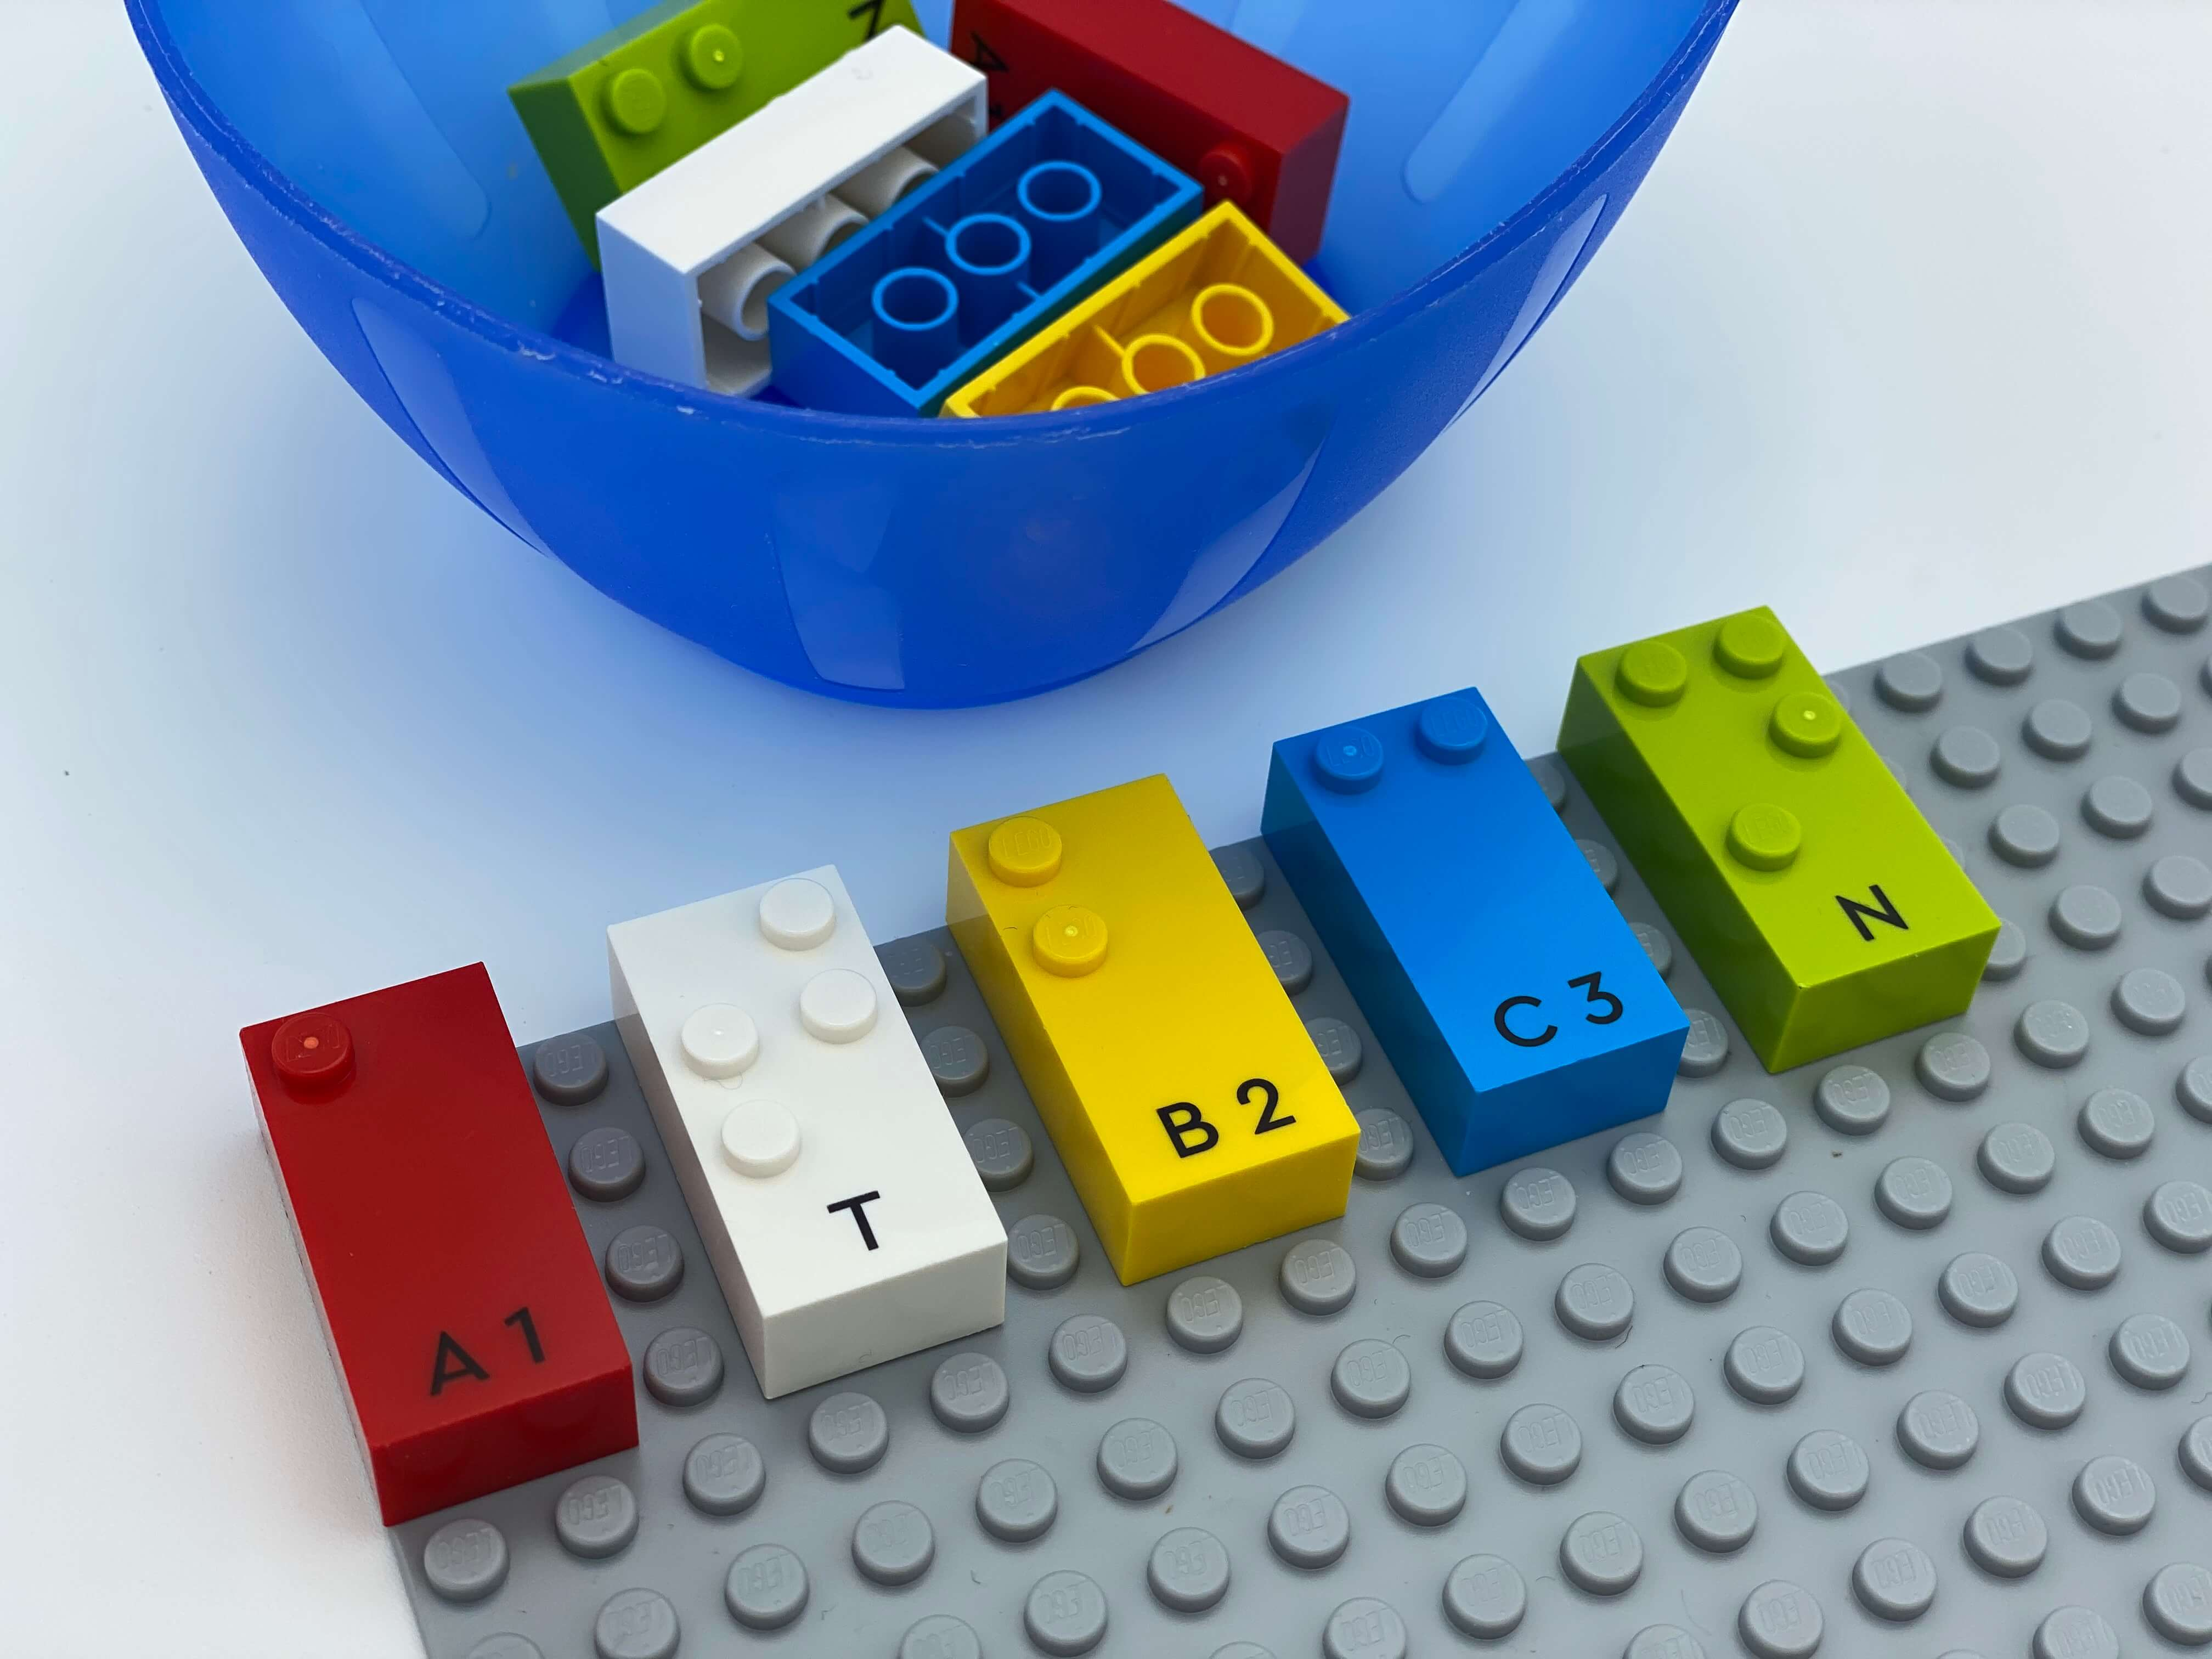 5 letter bricks aligned on the base plate: a, t, b, c, n. A bowl with bricks.